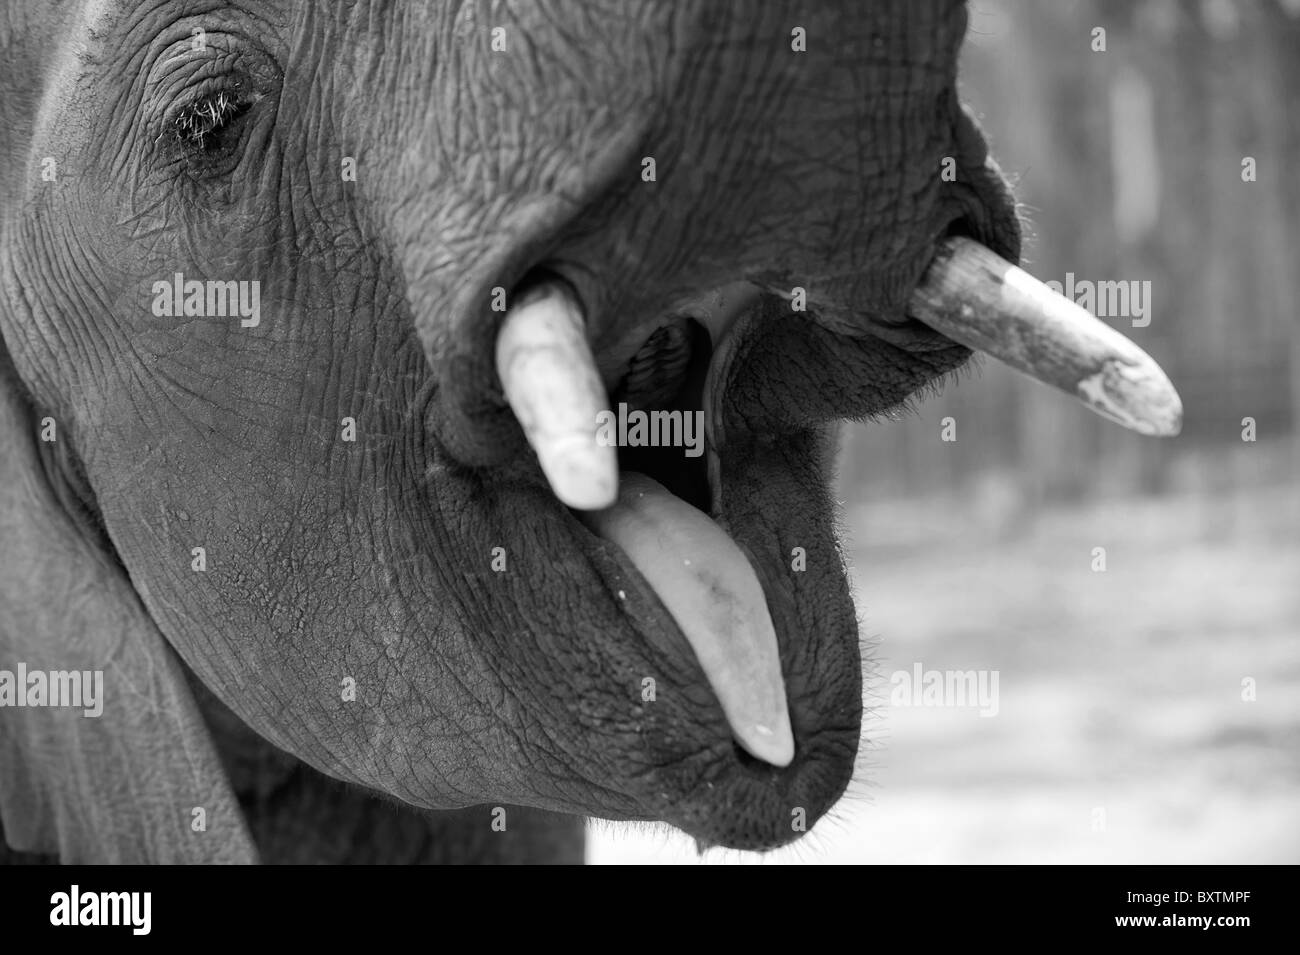 African Elephant Opening its Mouth and Displaying its Tongue and Molars near Knysna, South Africa - Stock Image